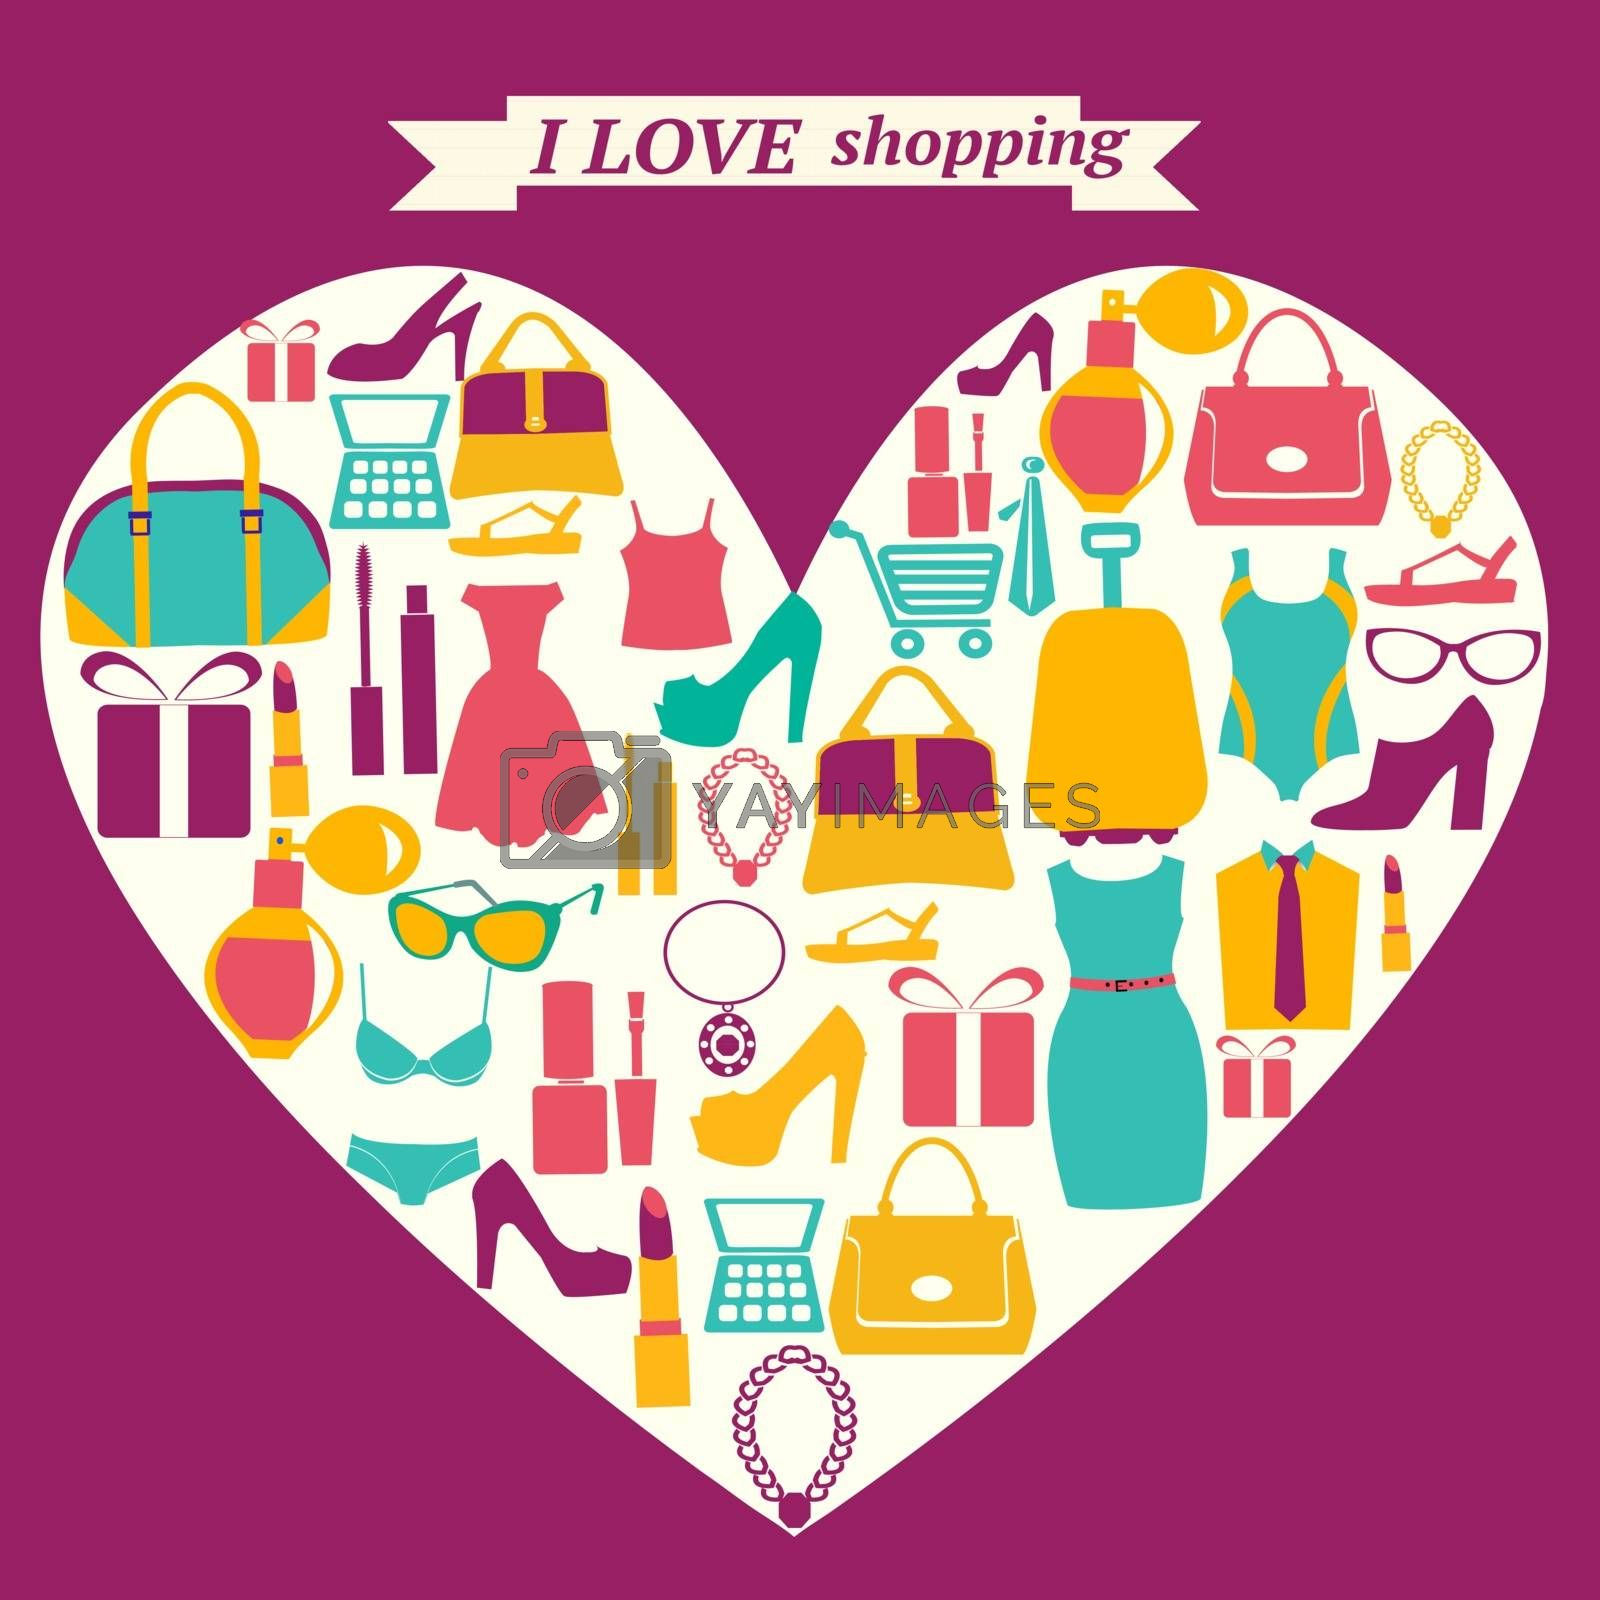 Vector icons set with colorful shopping icons in heart shape. I love shopping-background